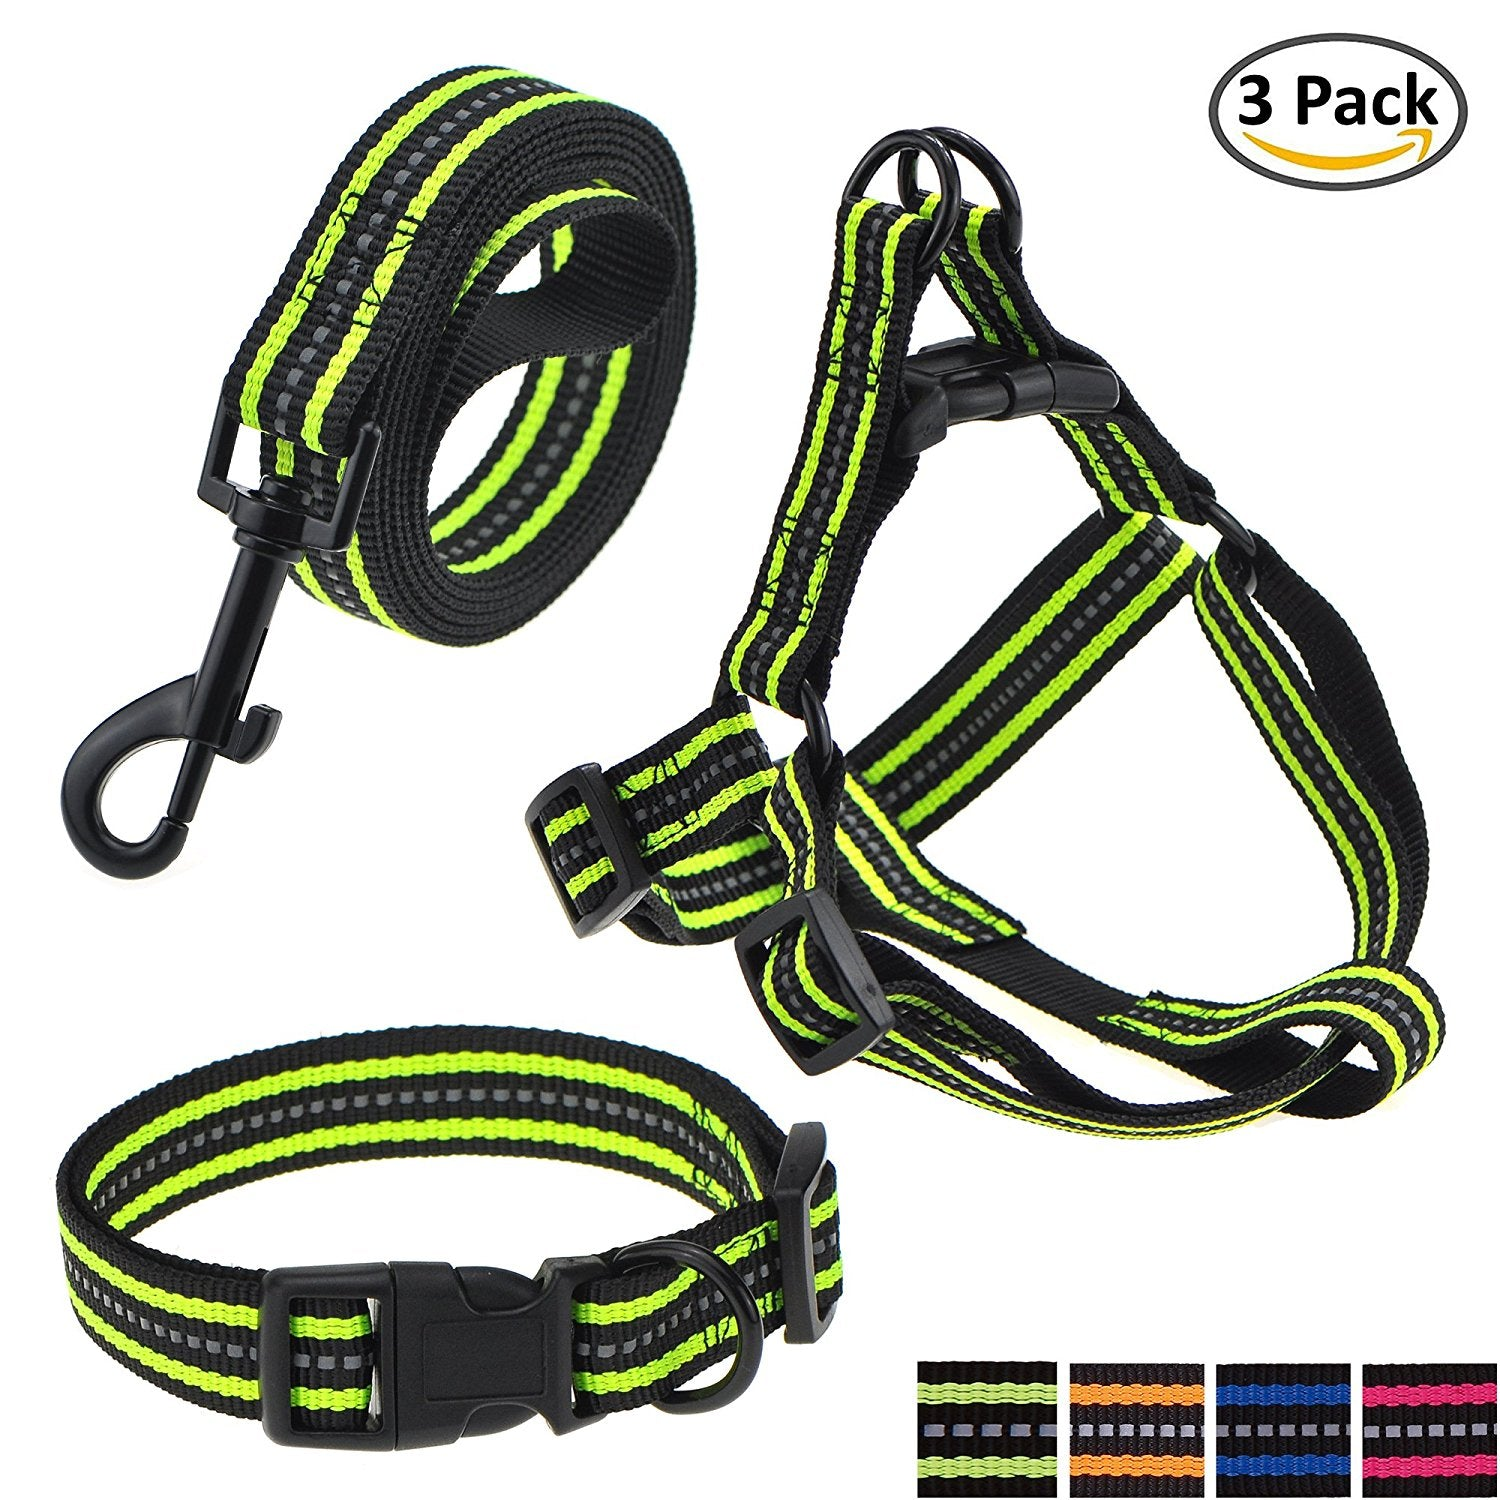 Reflective Double Band Dog Collar, Leash, Harness or Combo Set